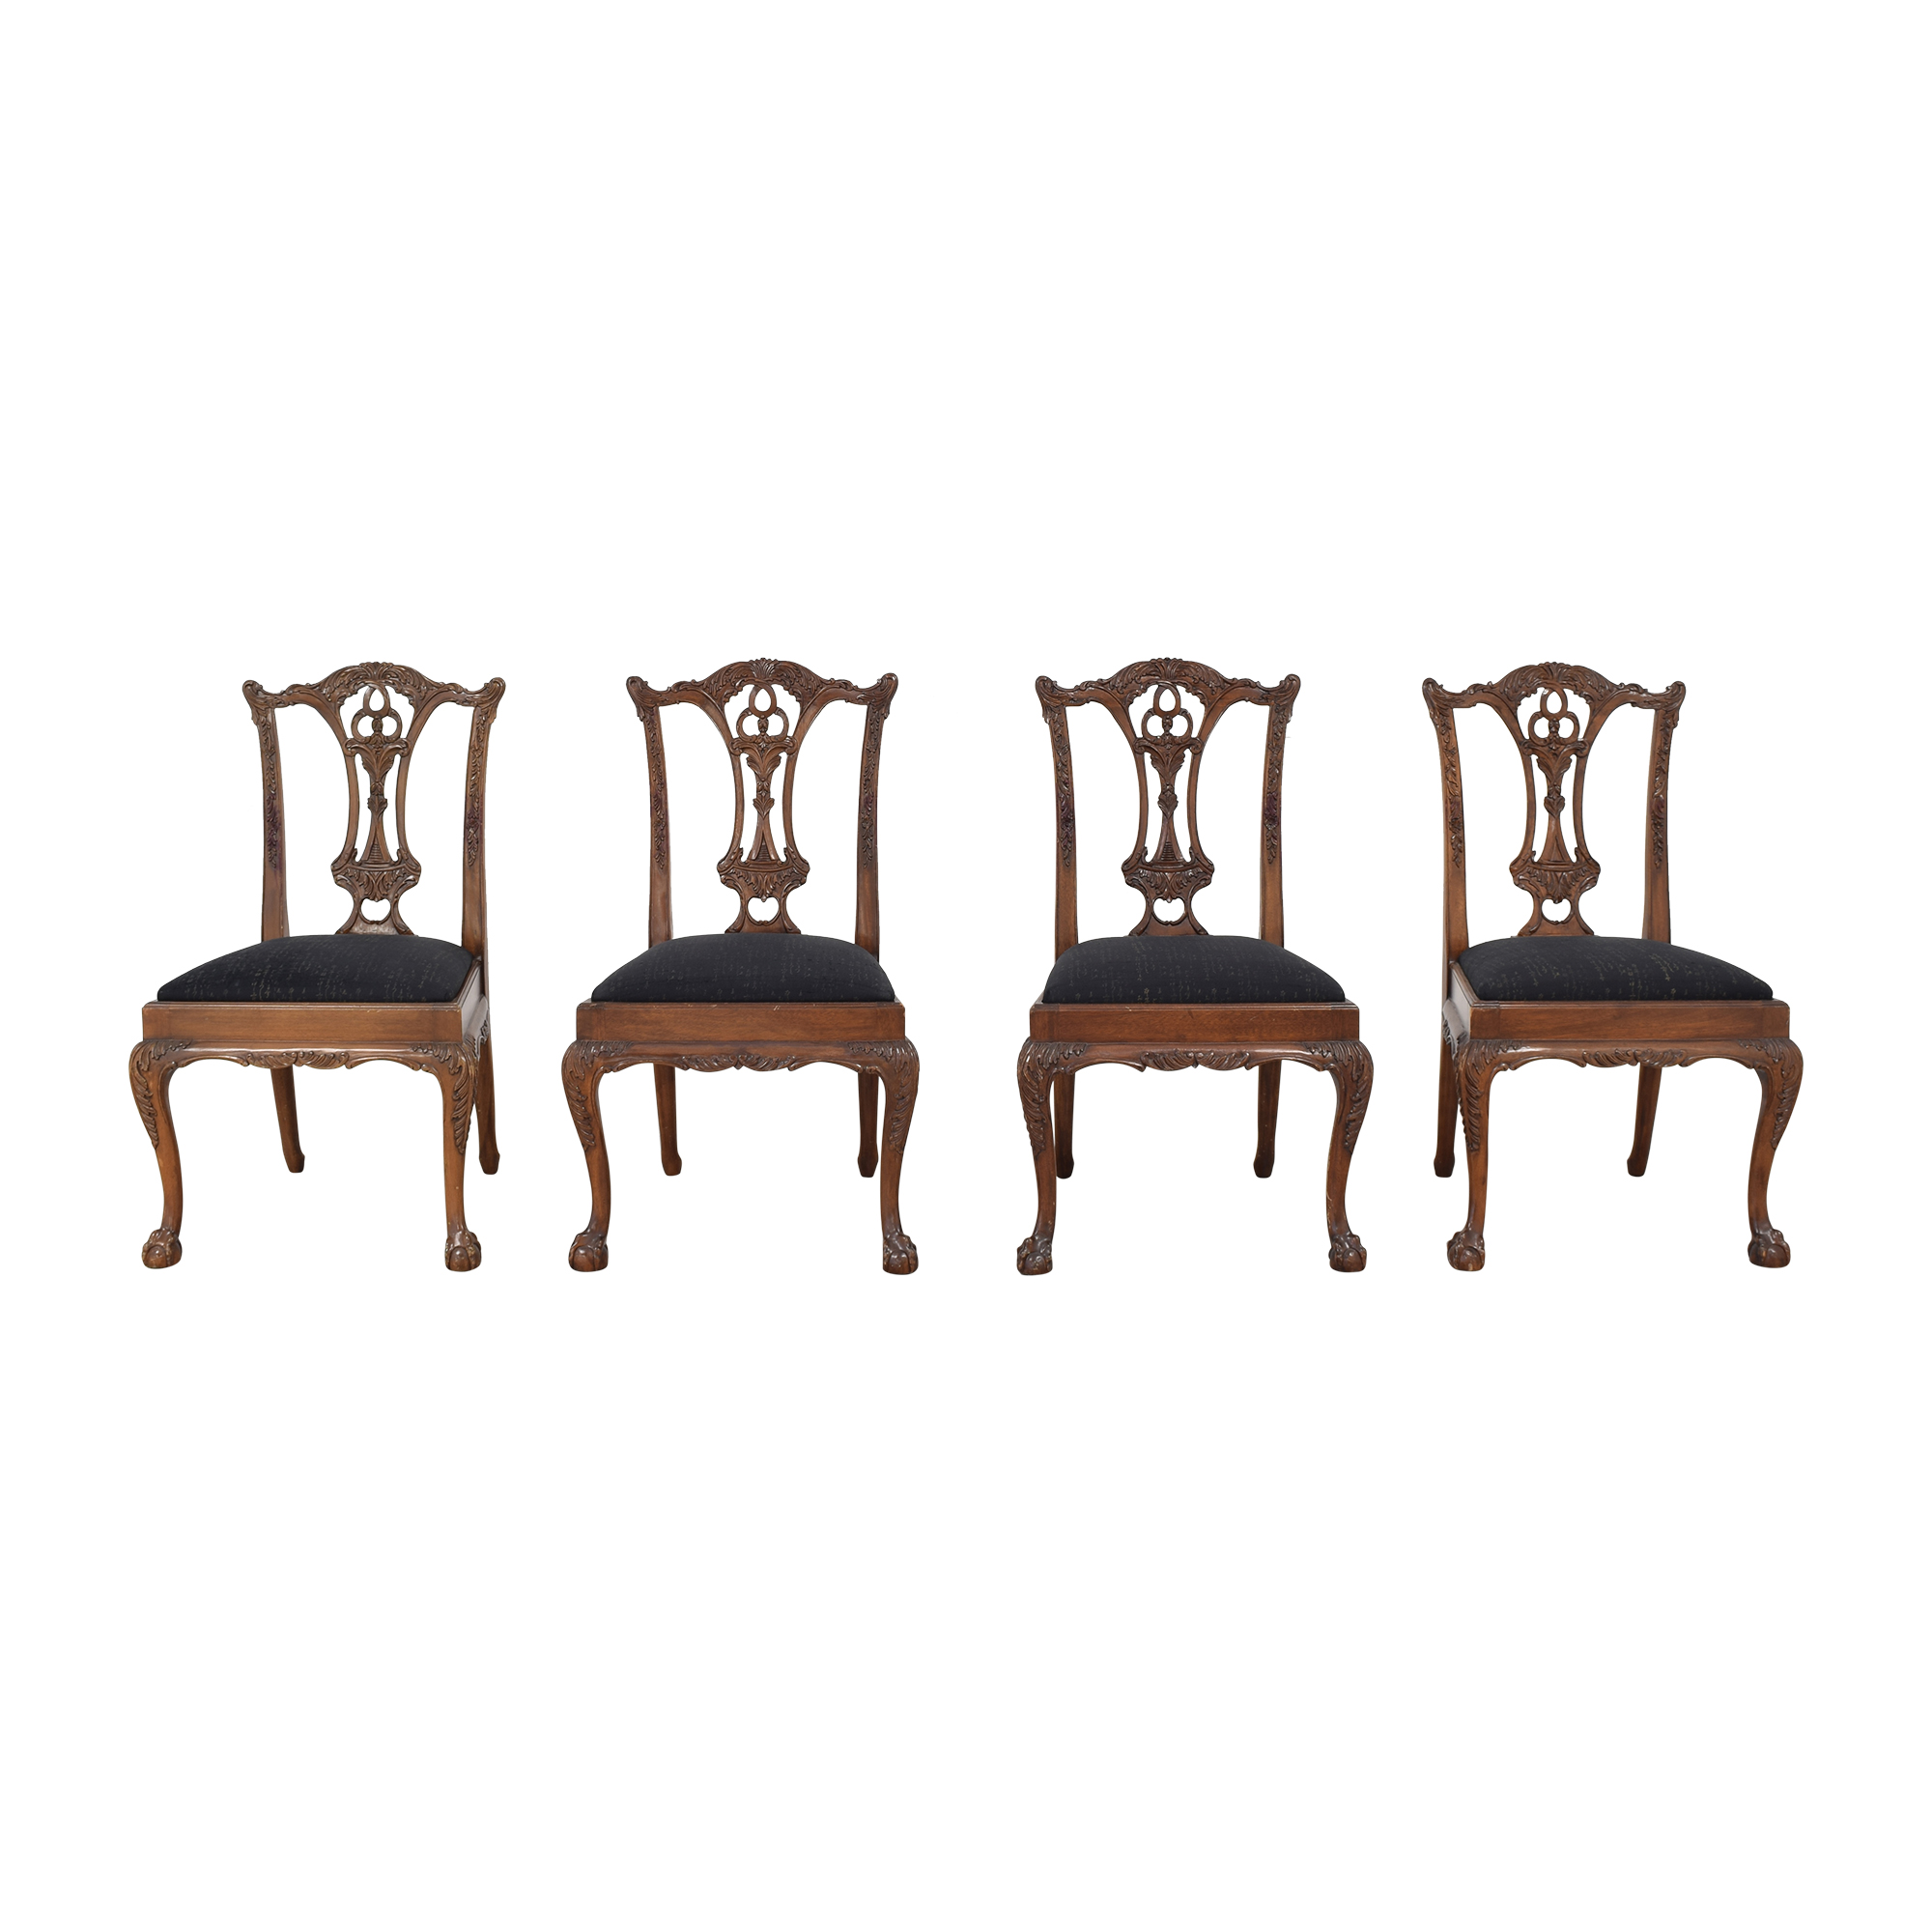 Maitland-Smith Maitland-Smith Carved Chippendale Style Dining Chairs nyc